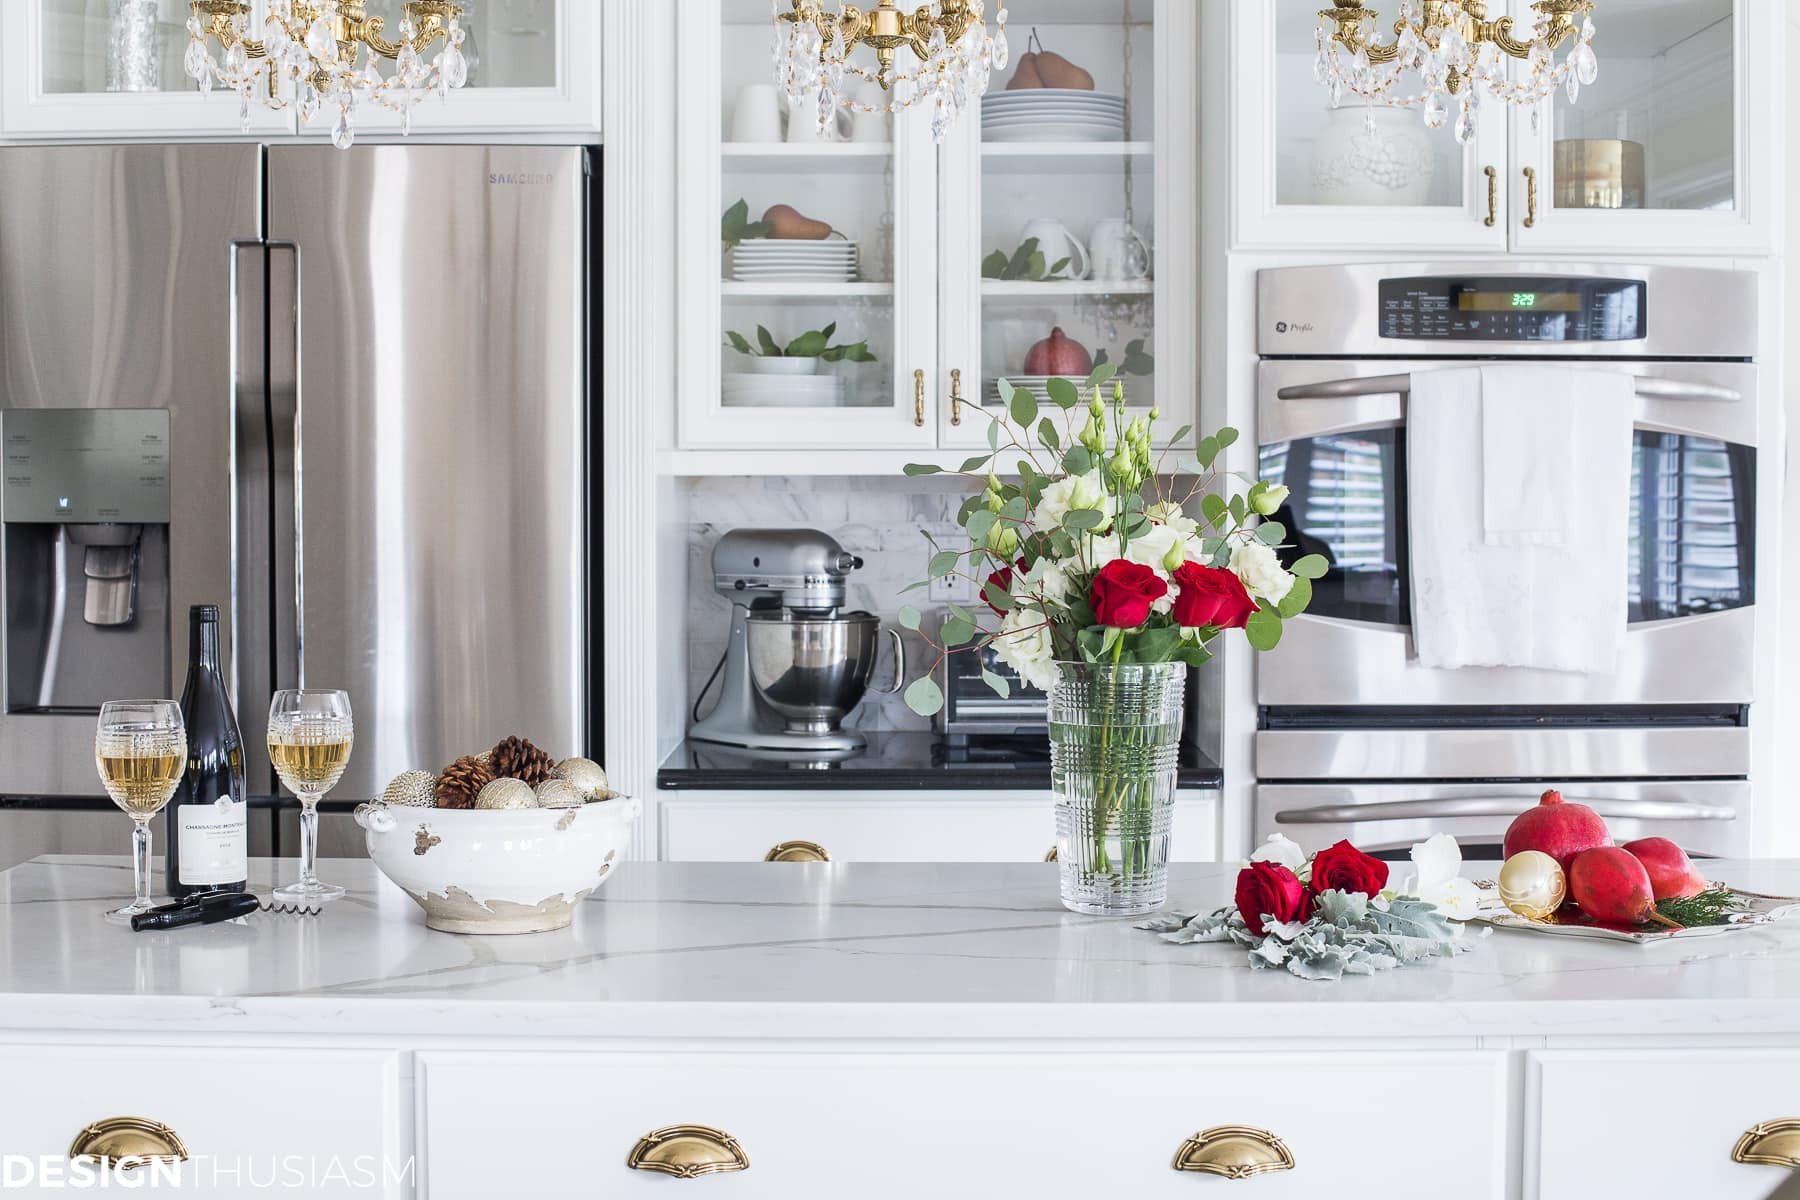 Best ideas about Kitchen Decorating Accessories . Save or Pin Christmas Kitchen Decor with French Country Elegance Now.